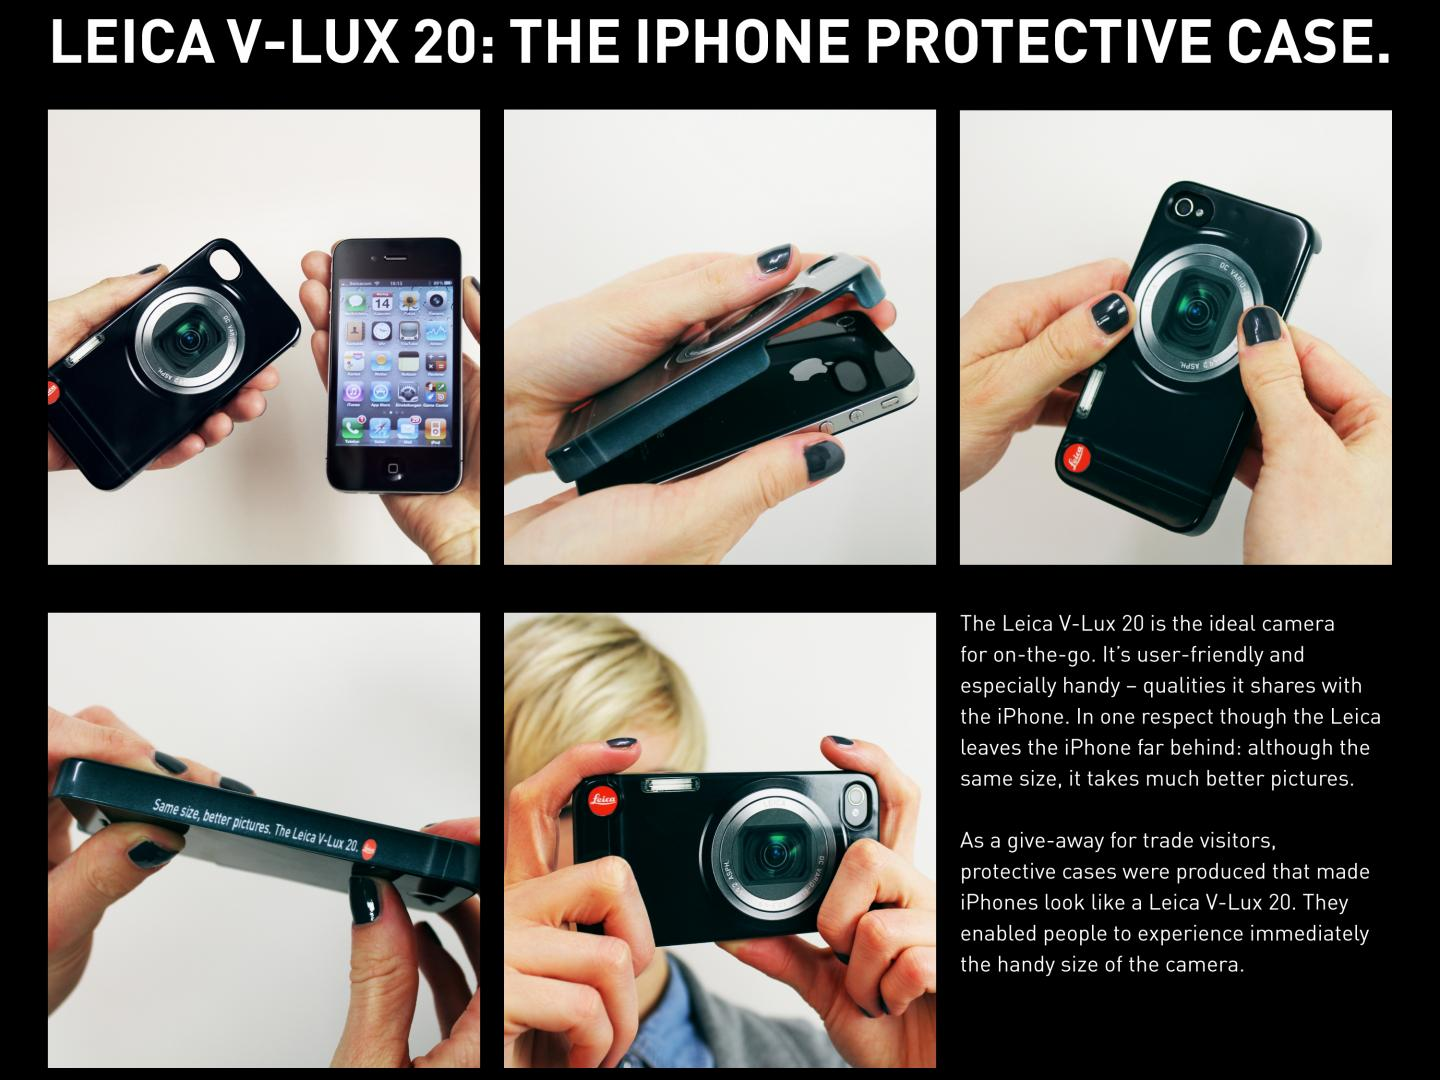 The iPhone Protective Case Thumbnail